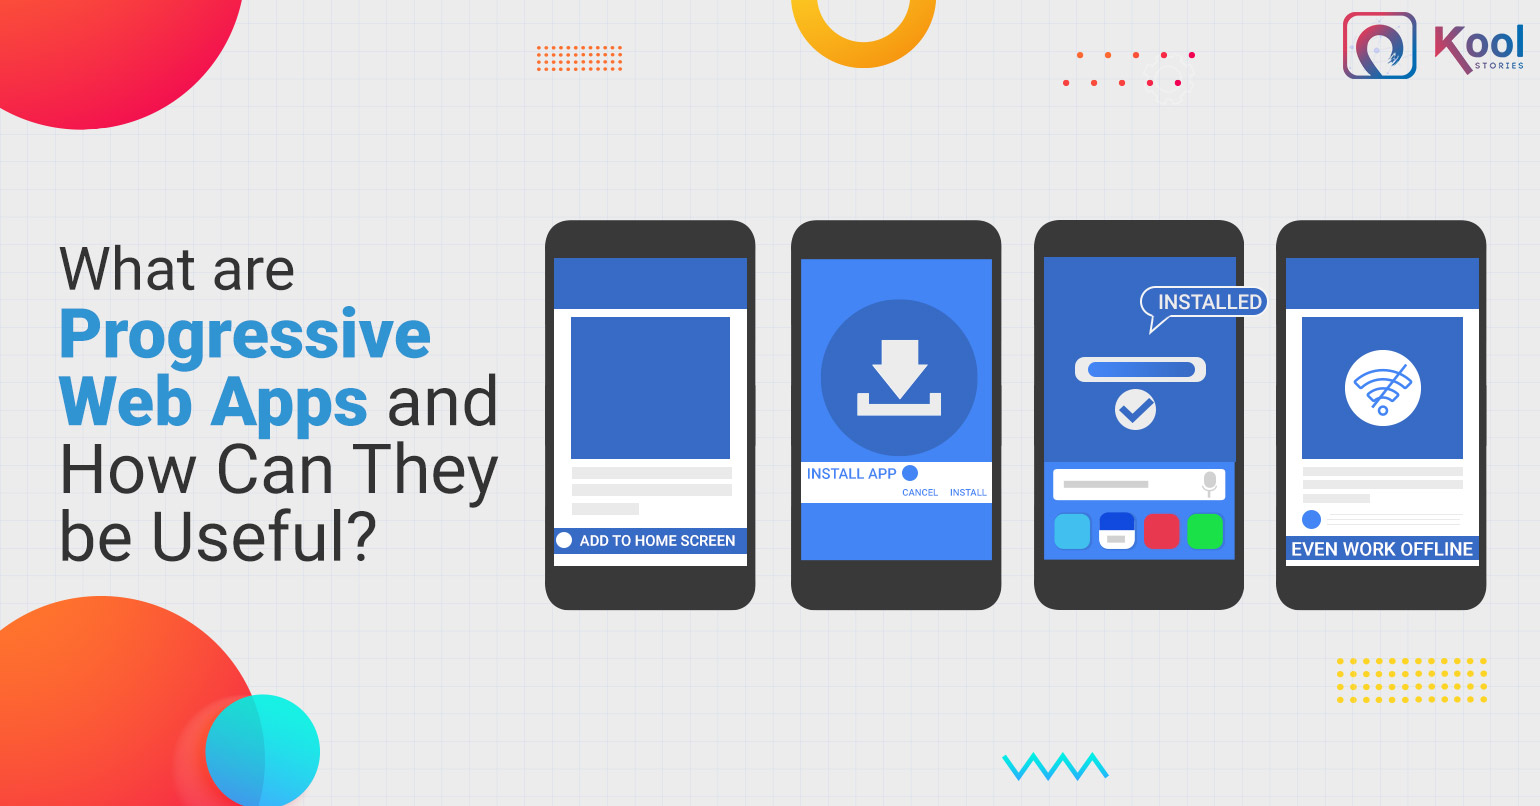 What are Progressive Web Apps and How Can They be Useful?